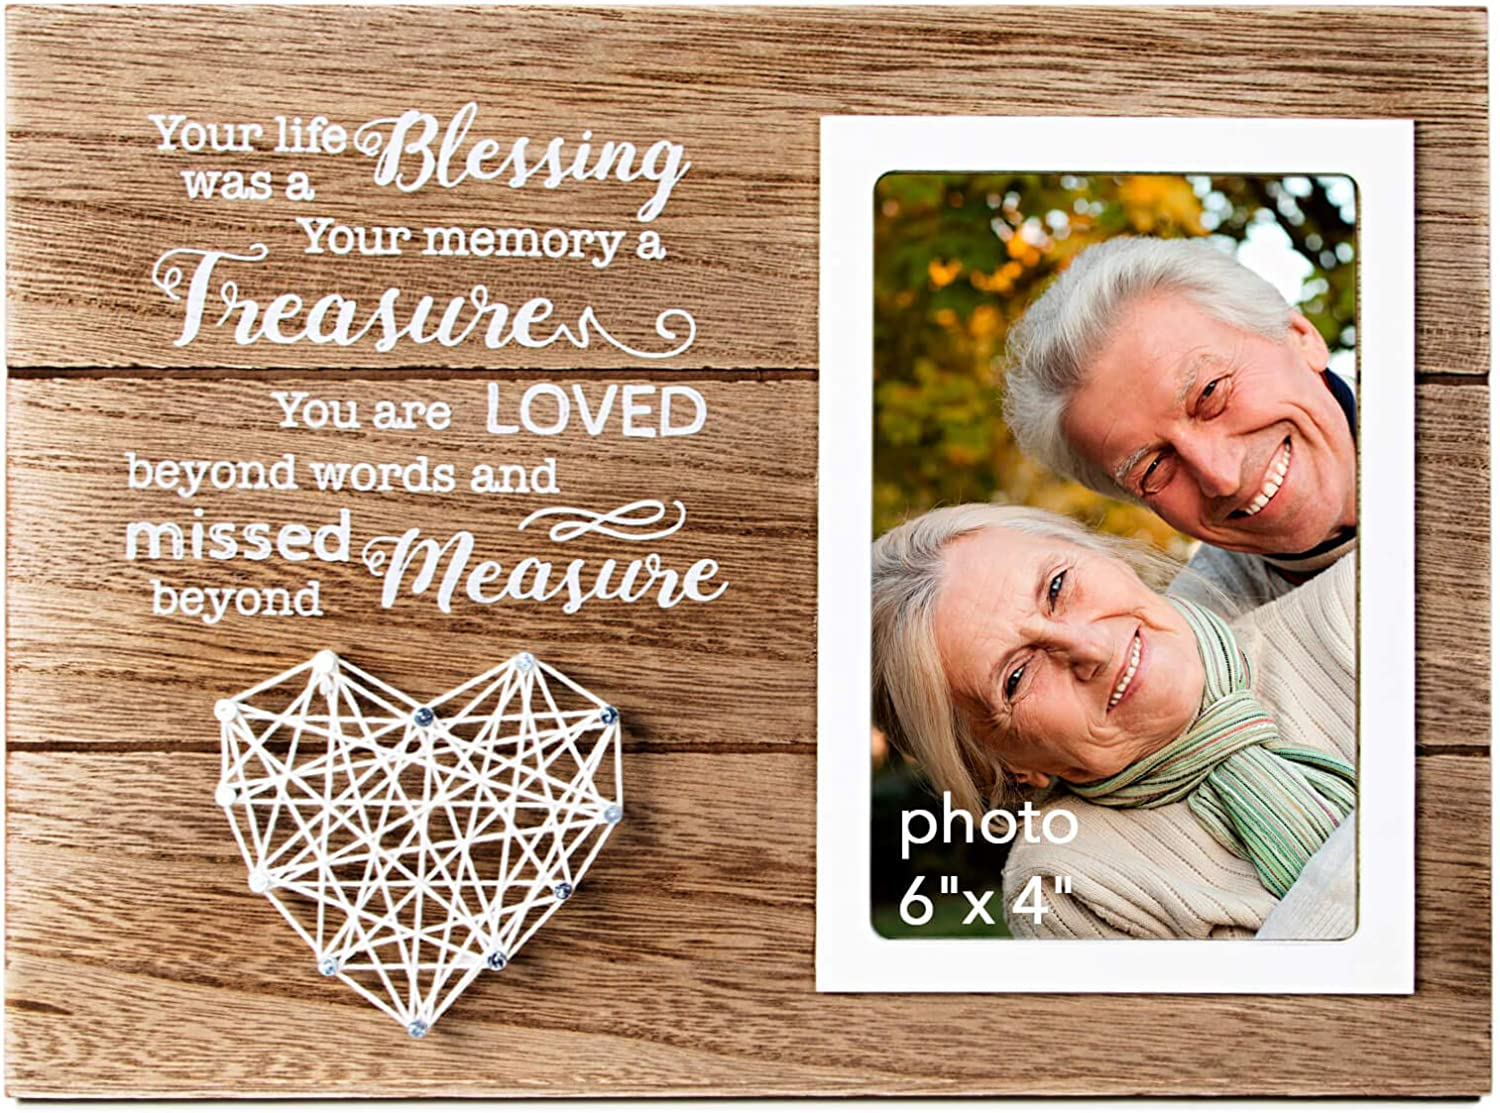 VILIGHT Memorial Picture Frame Sympathy Gifts for Loss of Loved One - Remembrance and Bereavement Present - 4x6 Photo